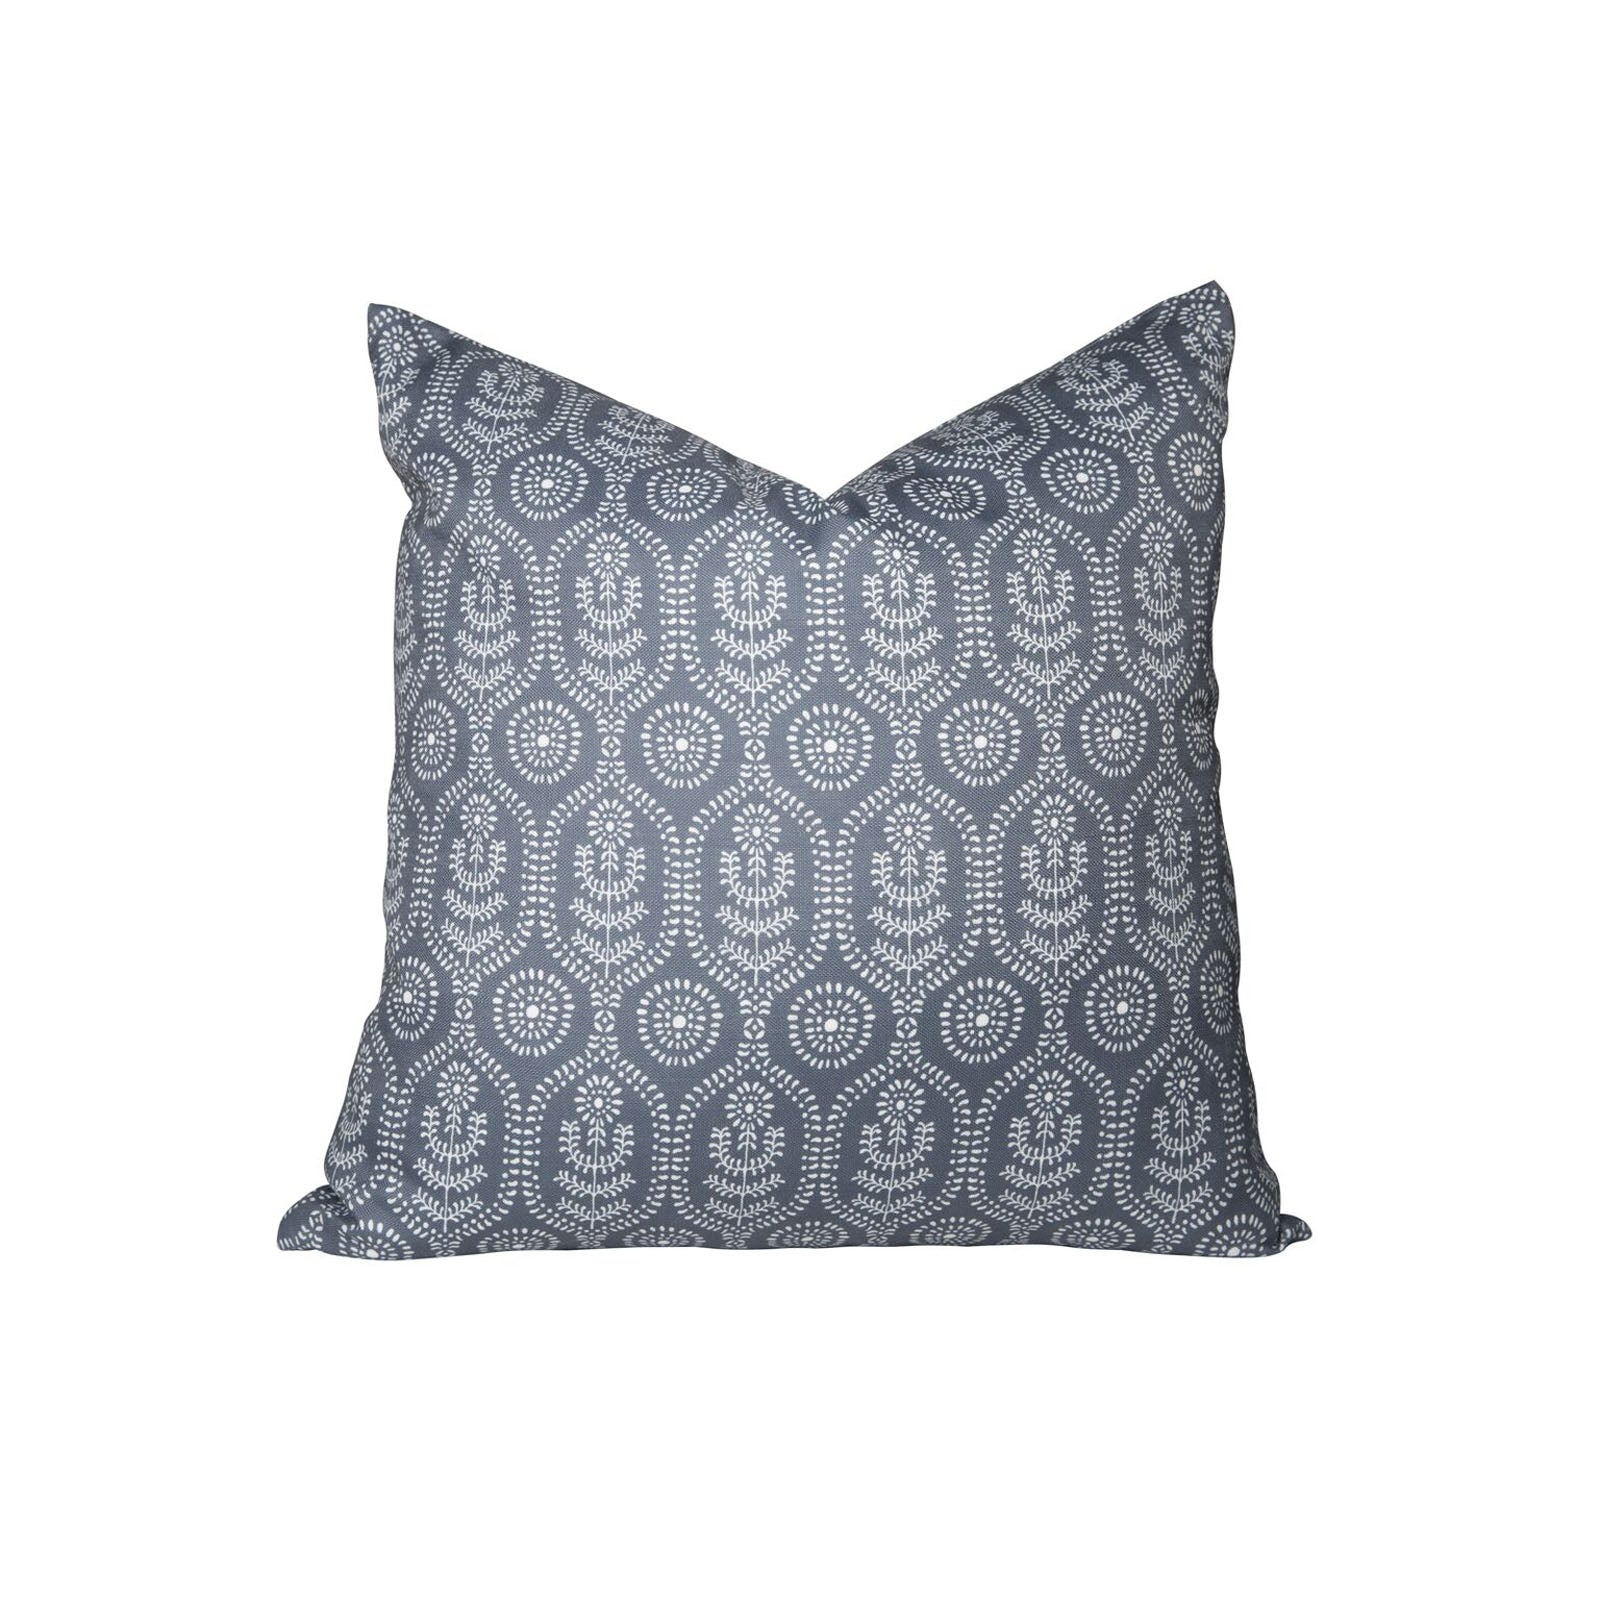 Ella Pillow in Midnight Blue